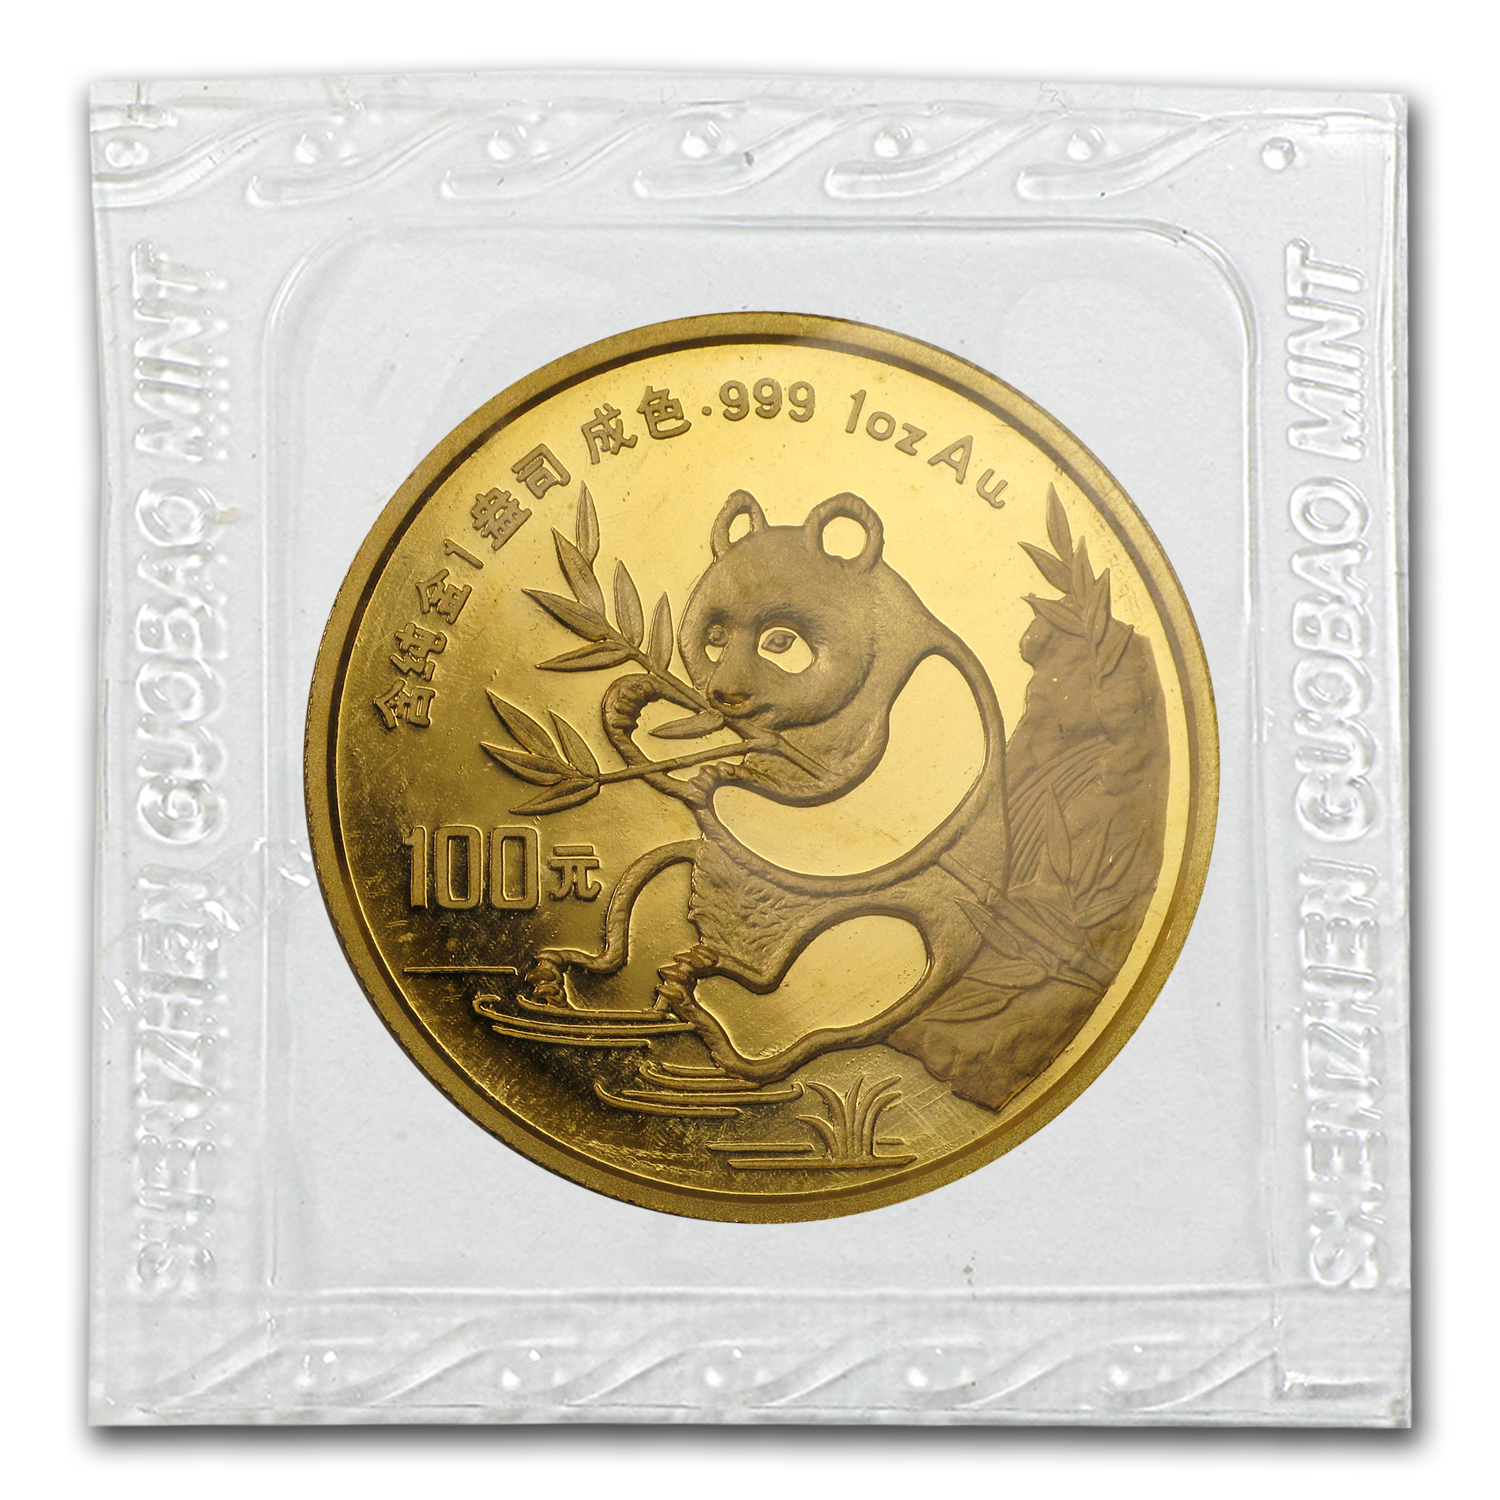 1991 1 oz Gold Chinese Panda - Small Date (Sealed)